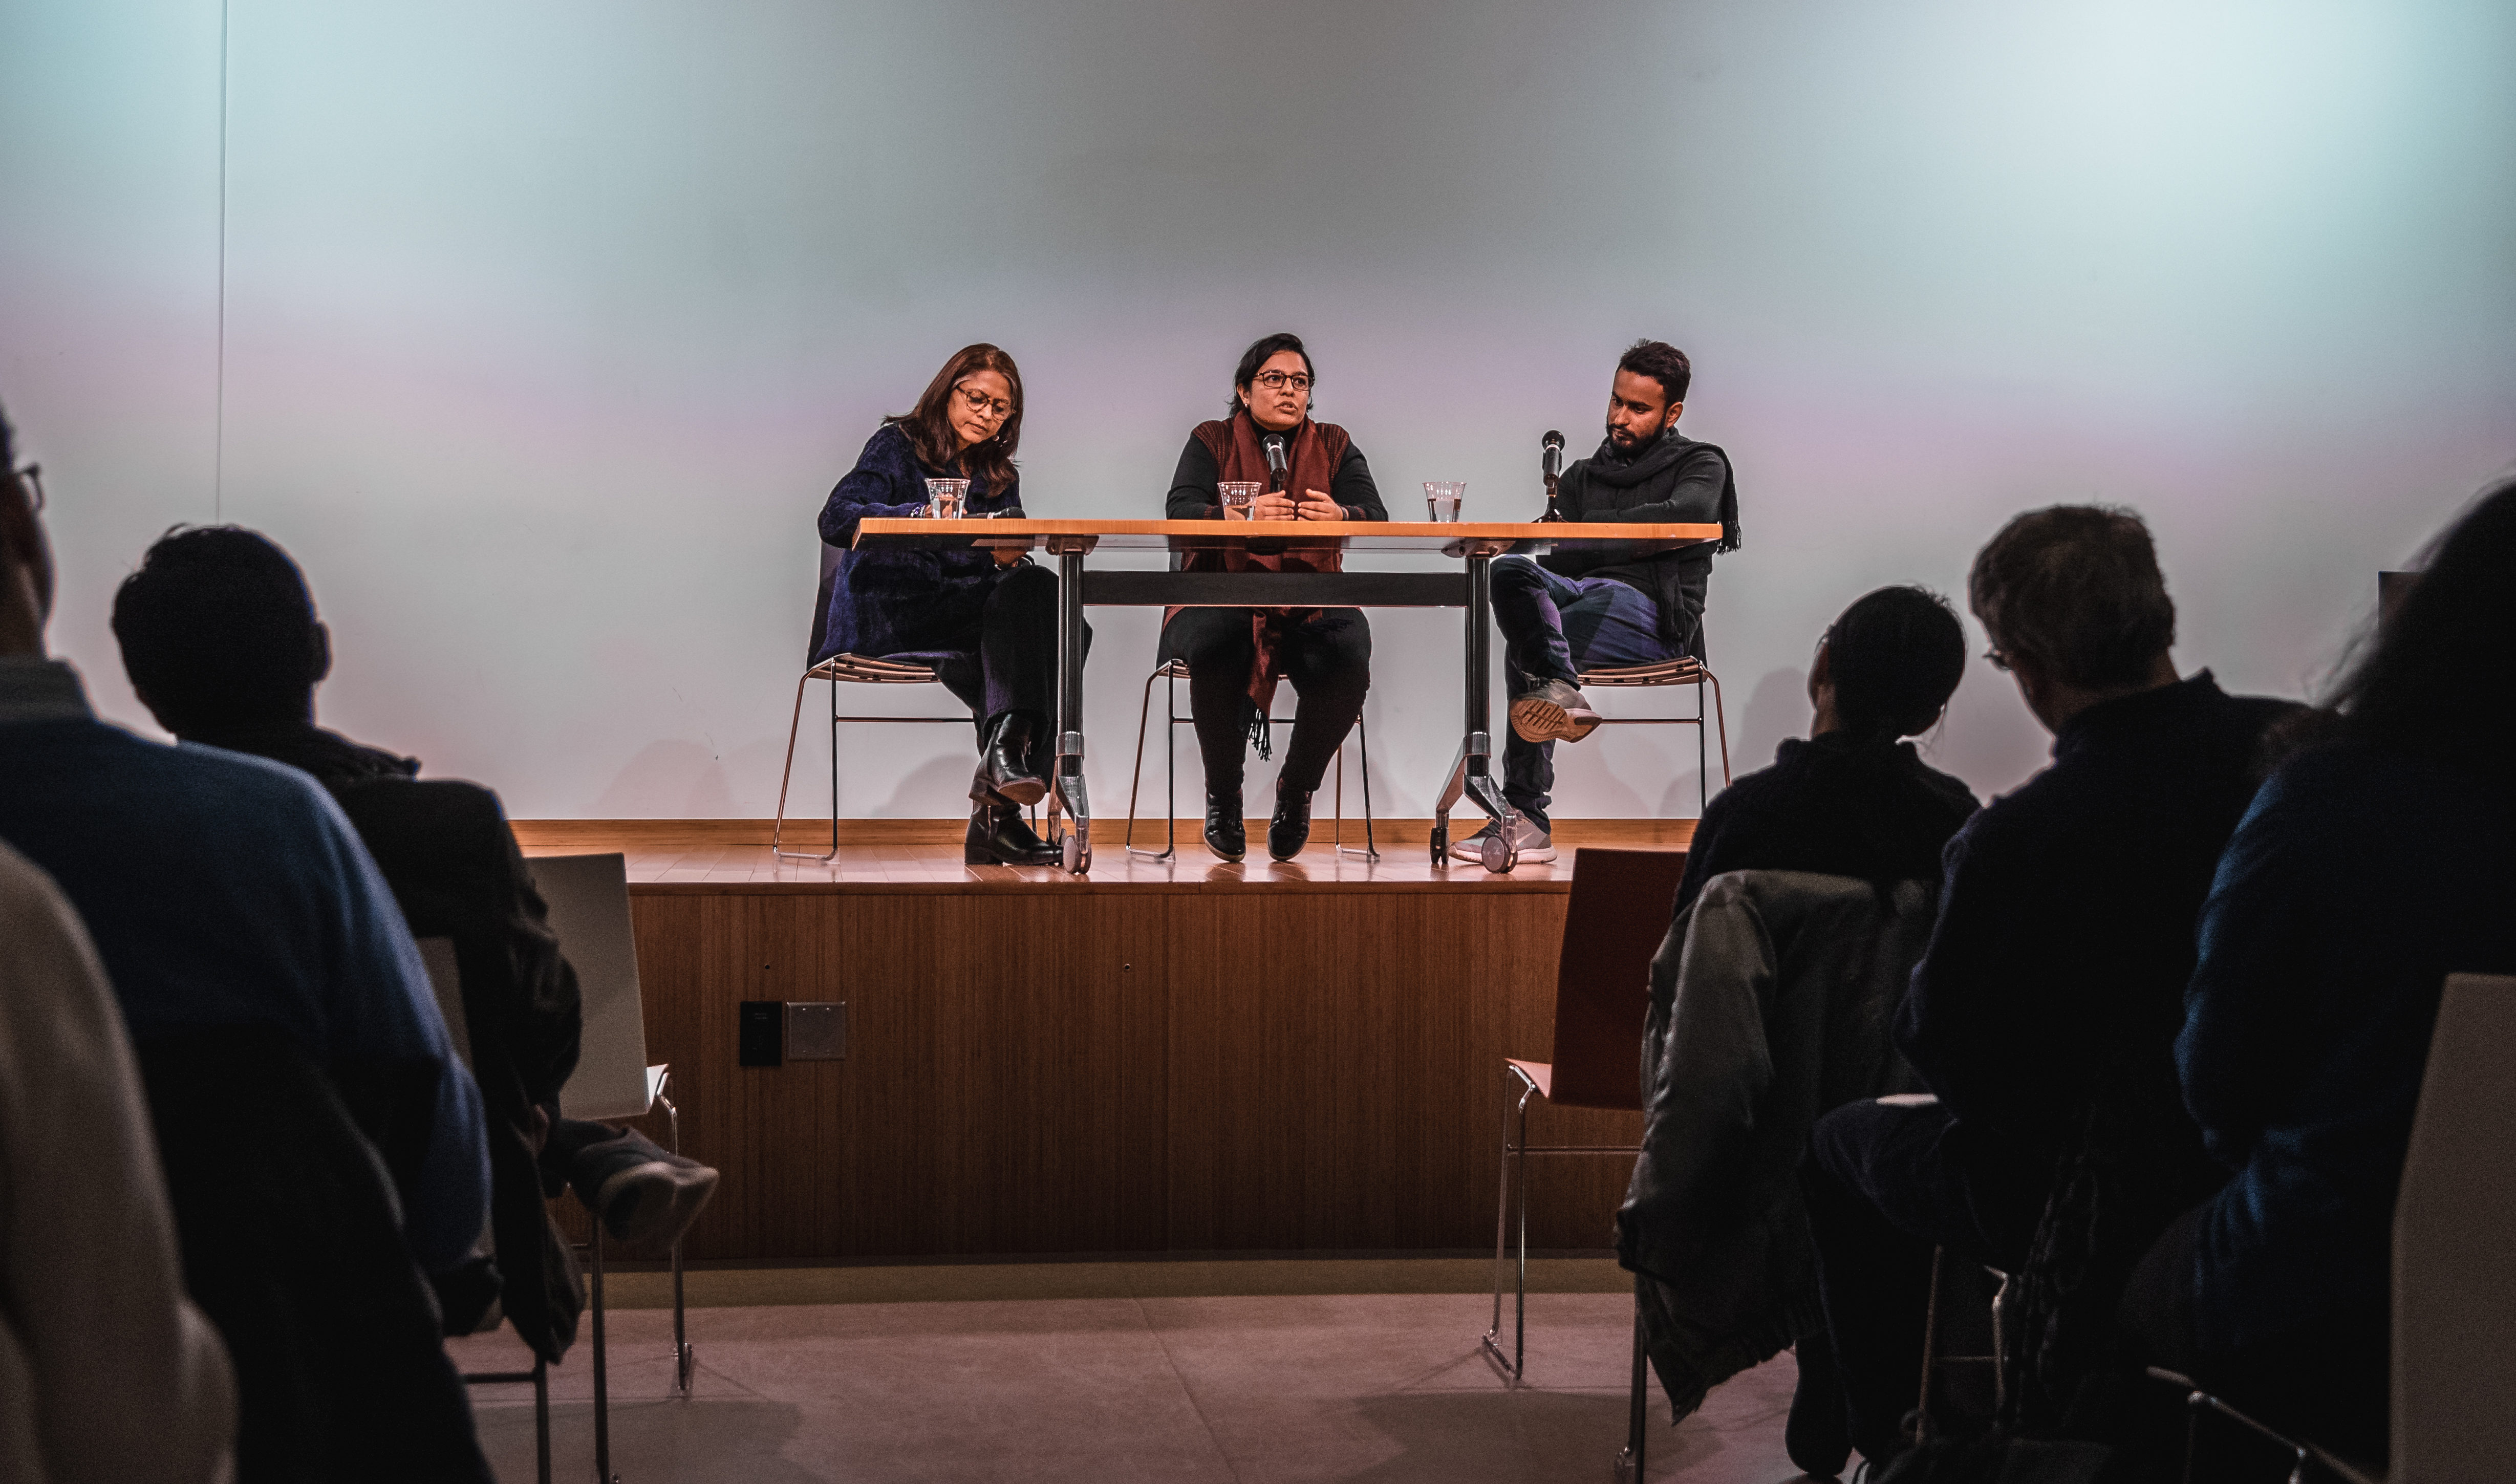 Meena Sonea Hewett, Mittal Institute Executive Director (left), speaks with Visiting Artist Fellows Krupa Makhija (center) and Mahboob Jokhio (right) on stage about their work at a crowded gallery exhibition.